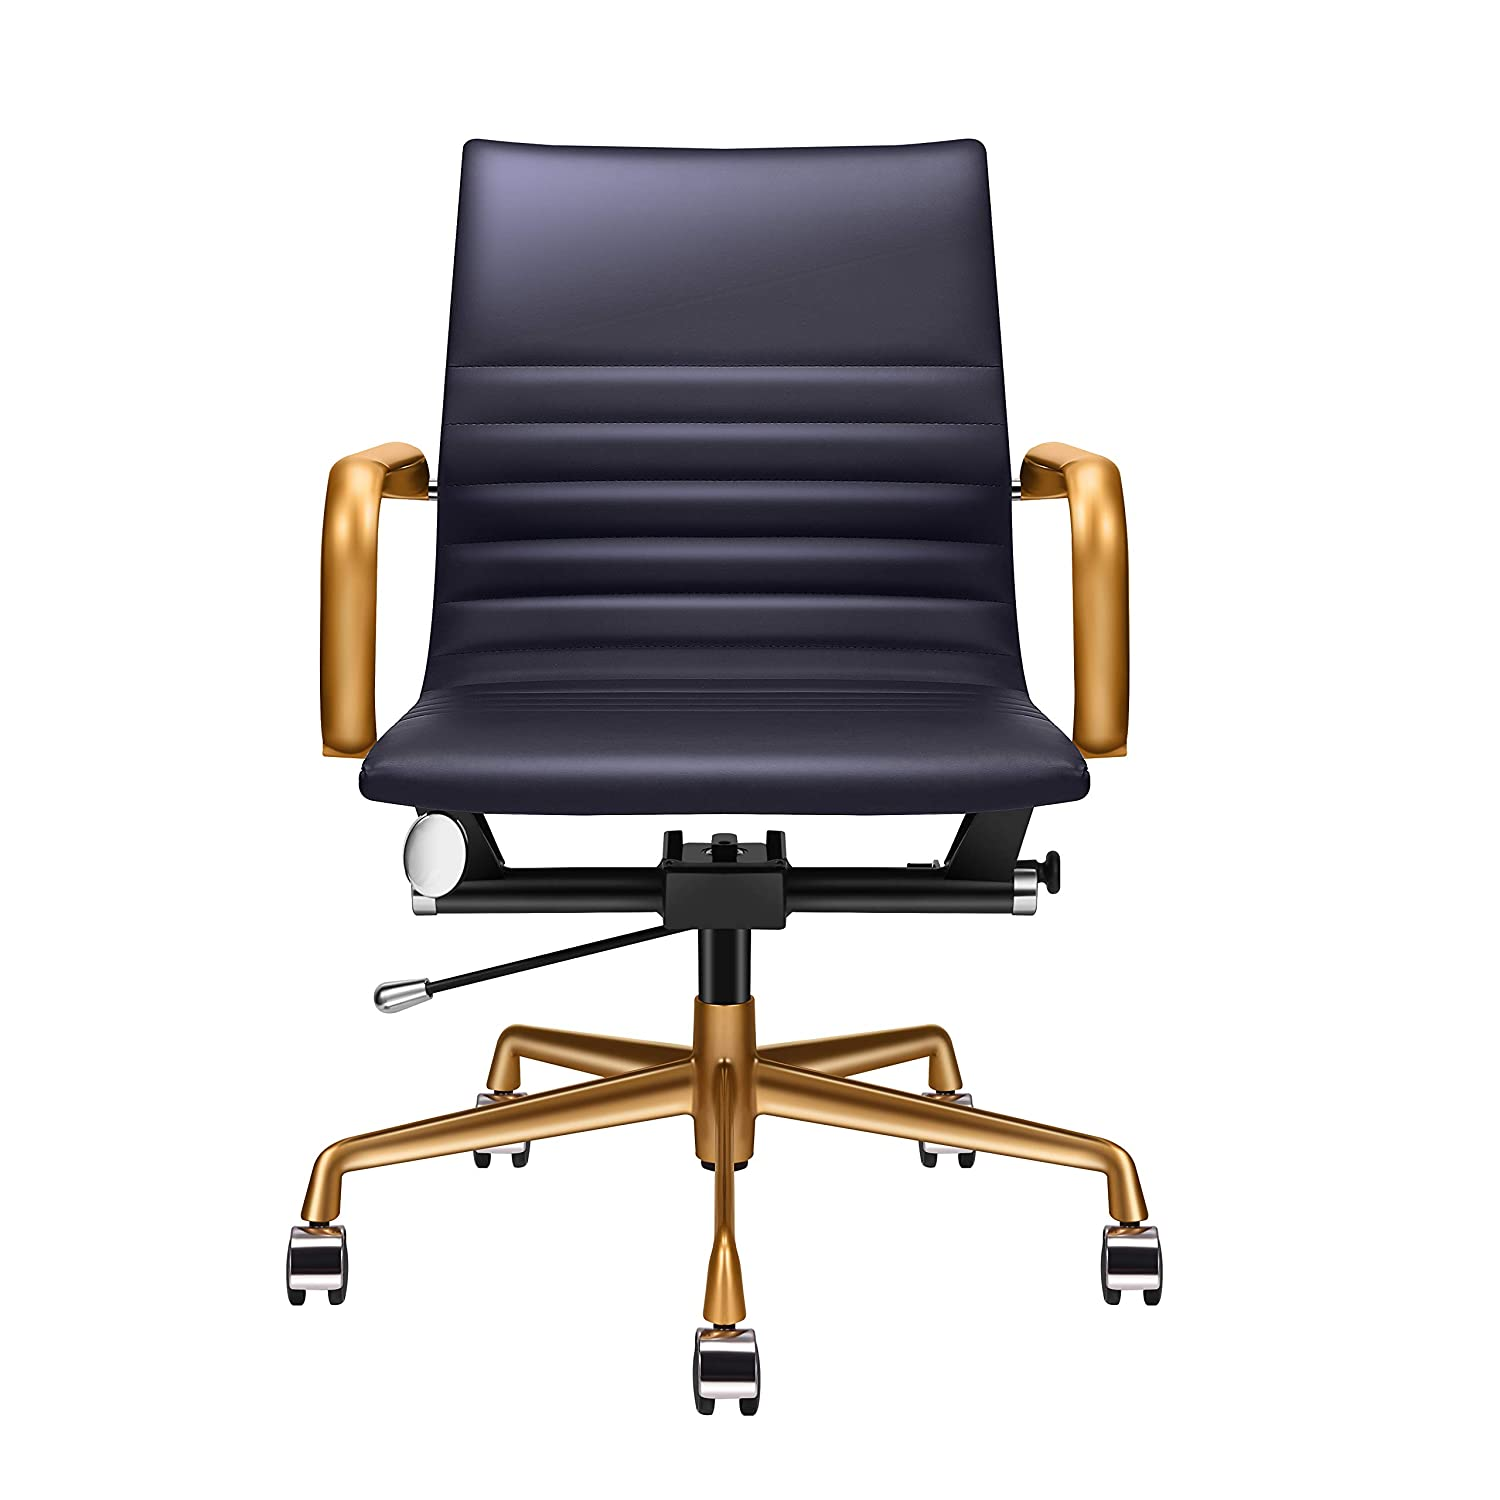 Awesome Amazon Com Luxmod Mid Back Office Chair With Gold Armrest Ibusinesslaw Wood Chair Design Ideas Ibusinesslaworg